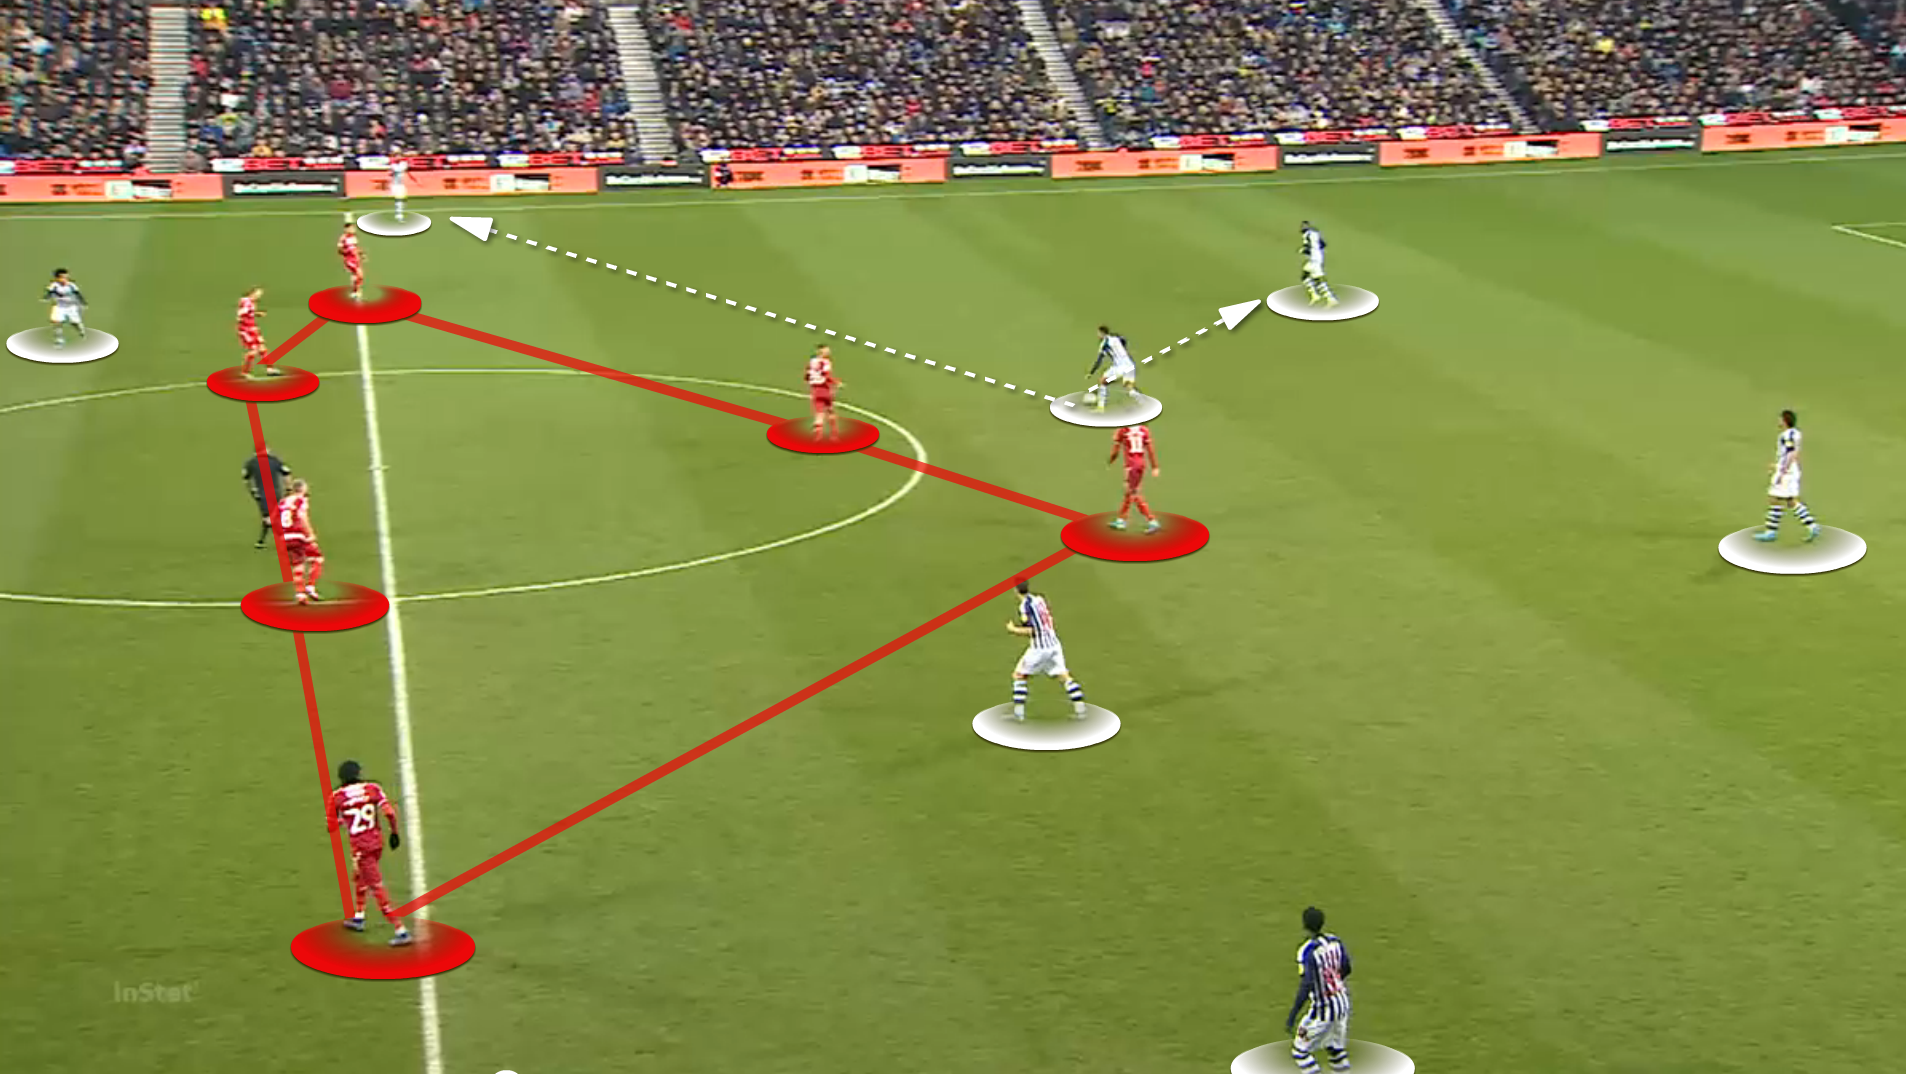 EFL Championship 2019/20: West Brom vs Middlesbrough - tactical analysis tactics